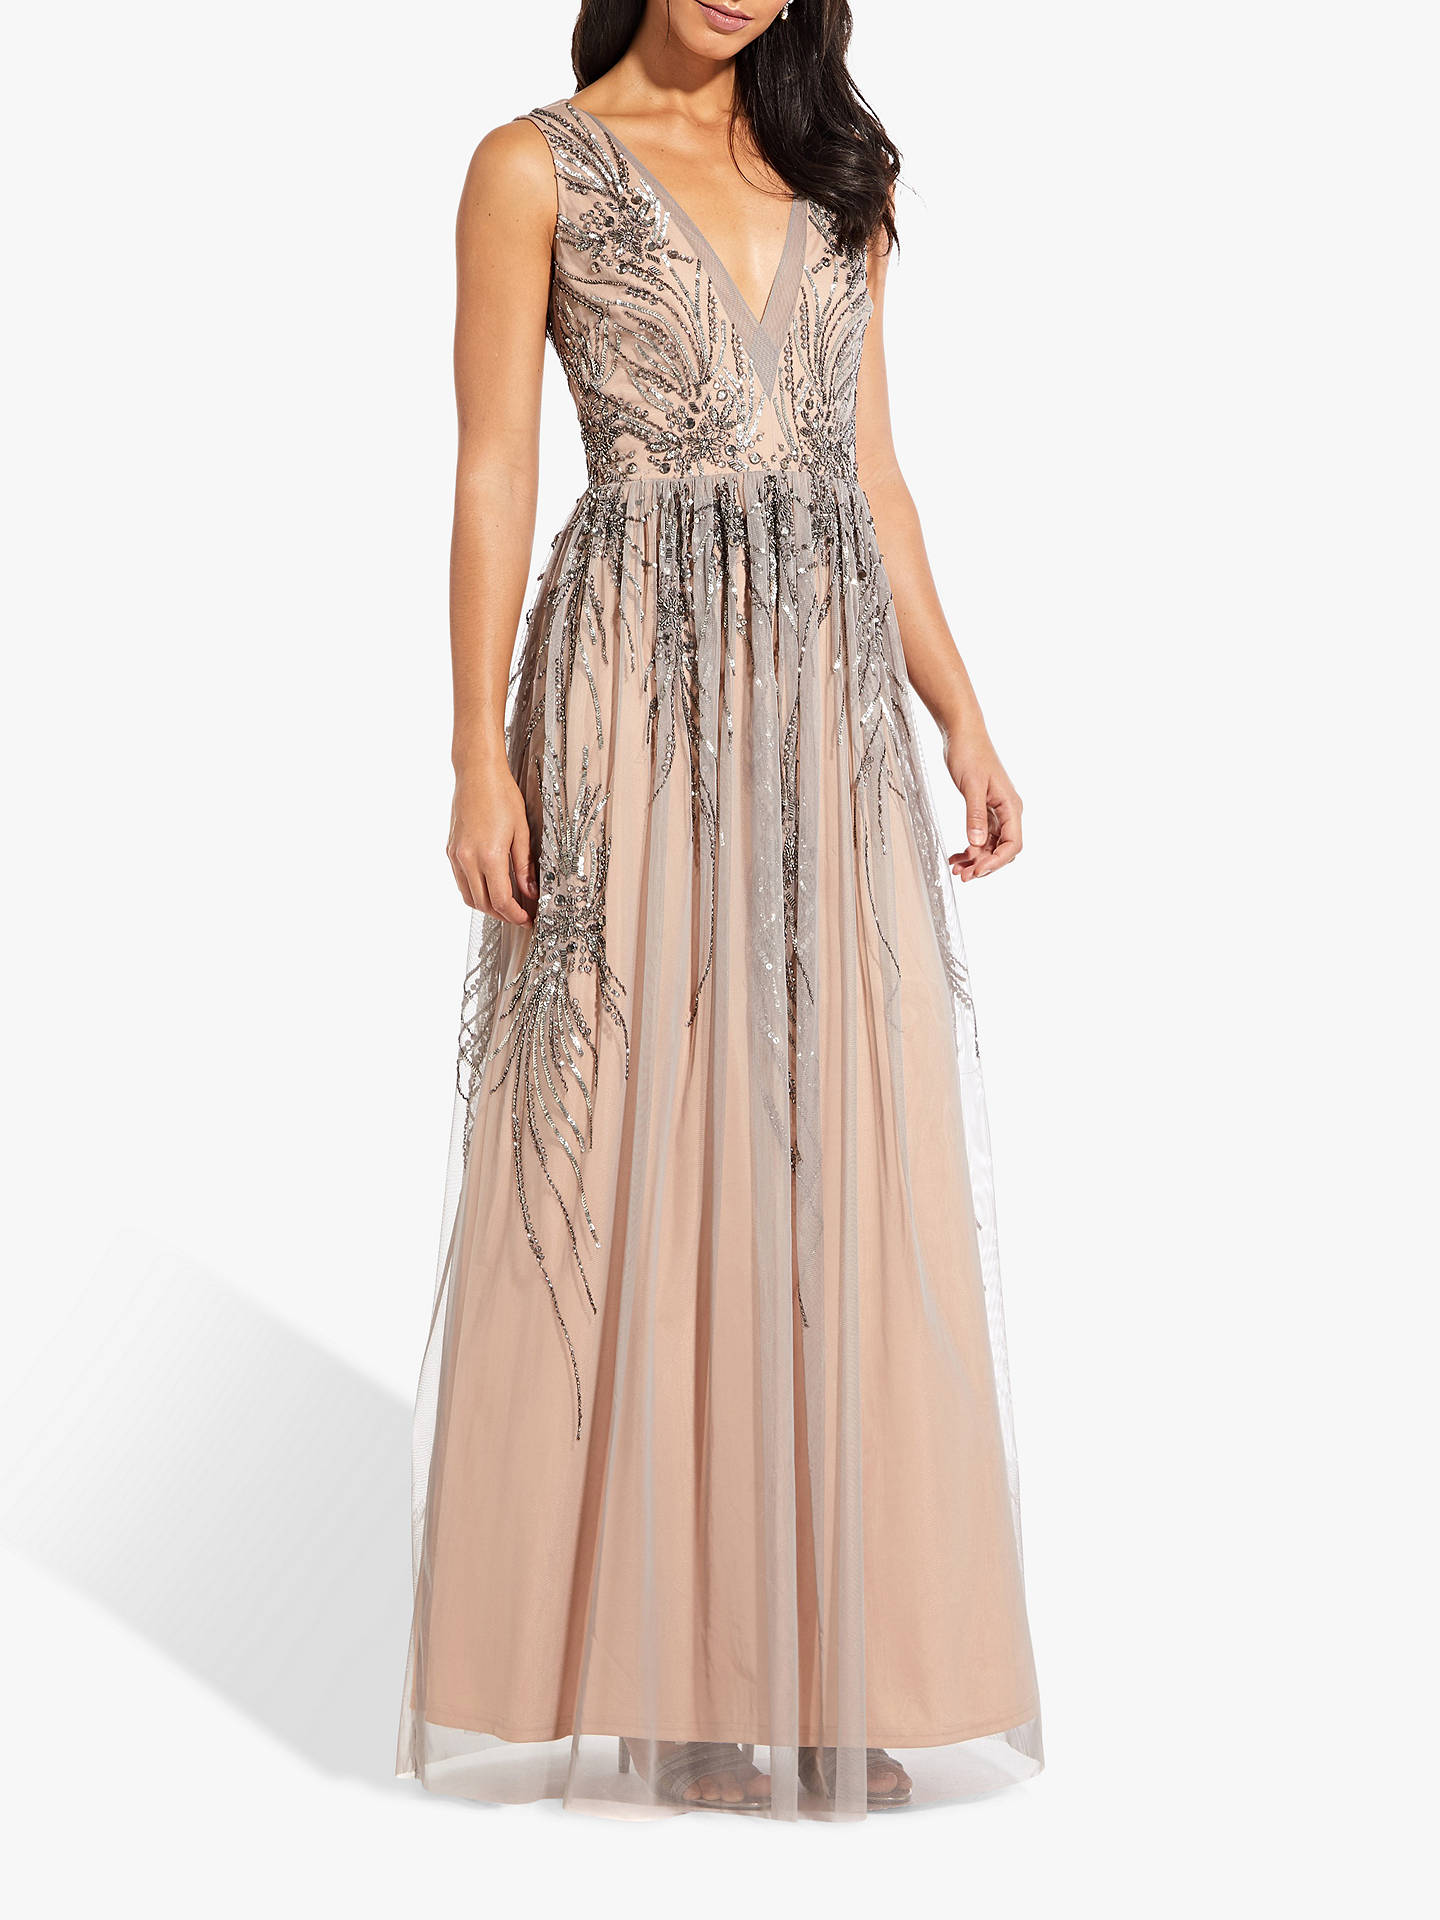 BuyAdrianna Papell Beaded Long Dress, Mercury/Nude, 6 Online at johnlewis.com